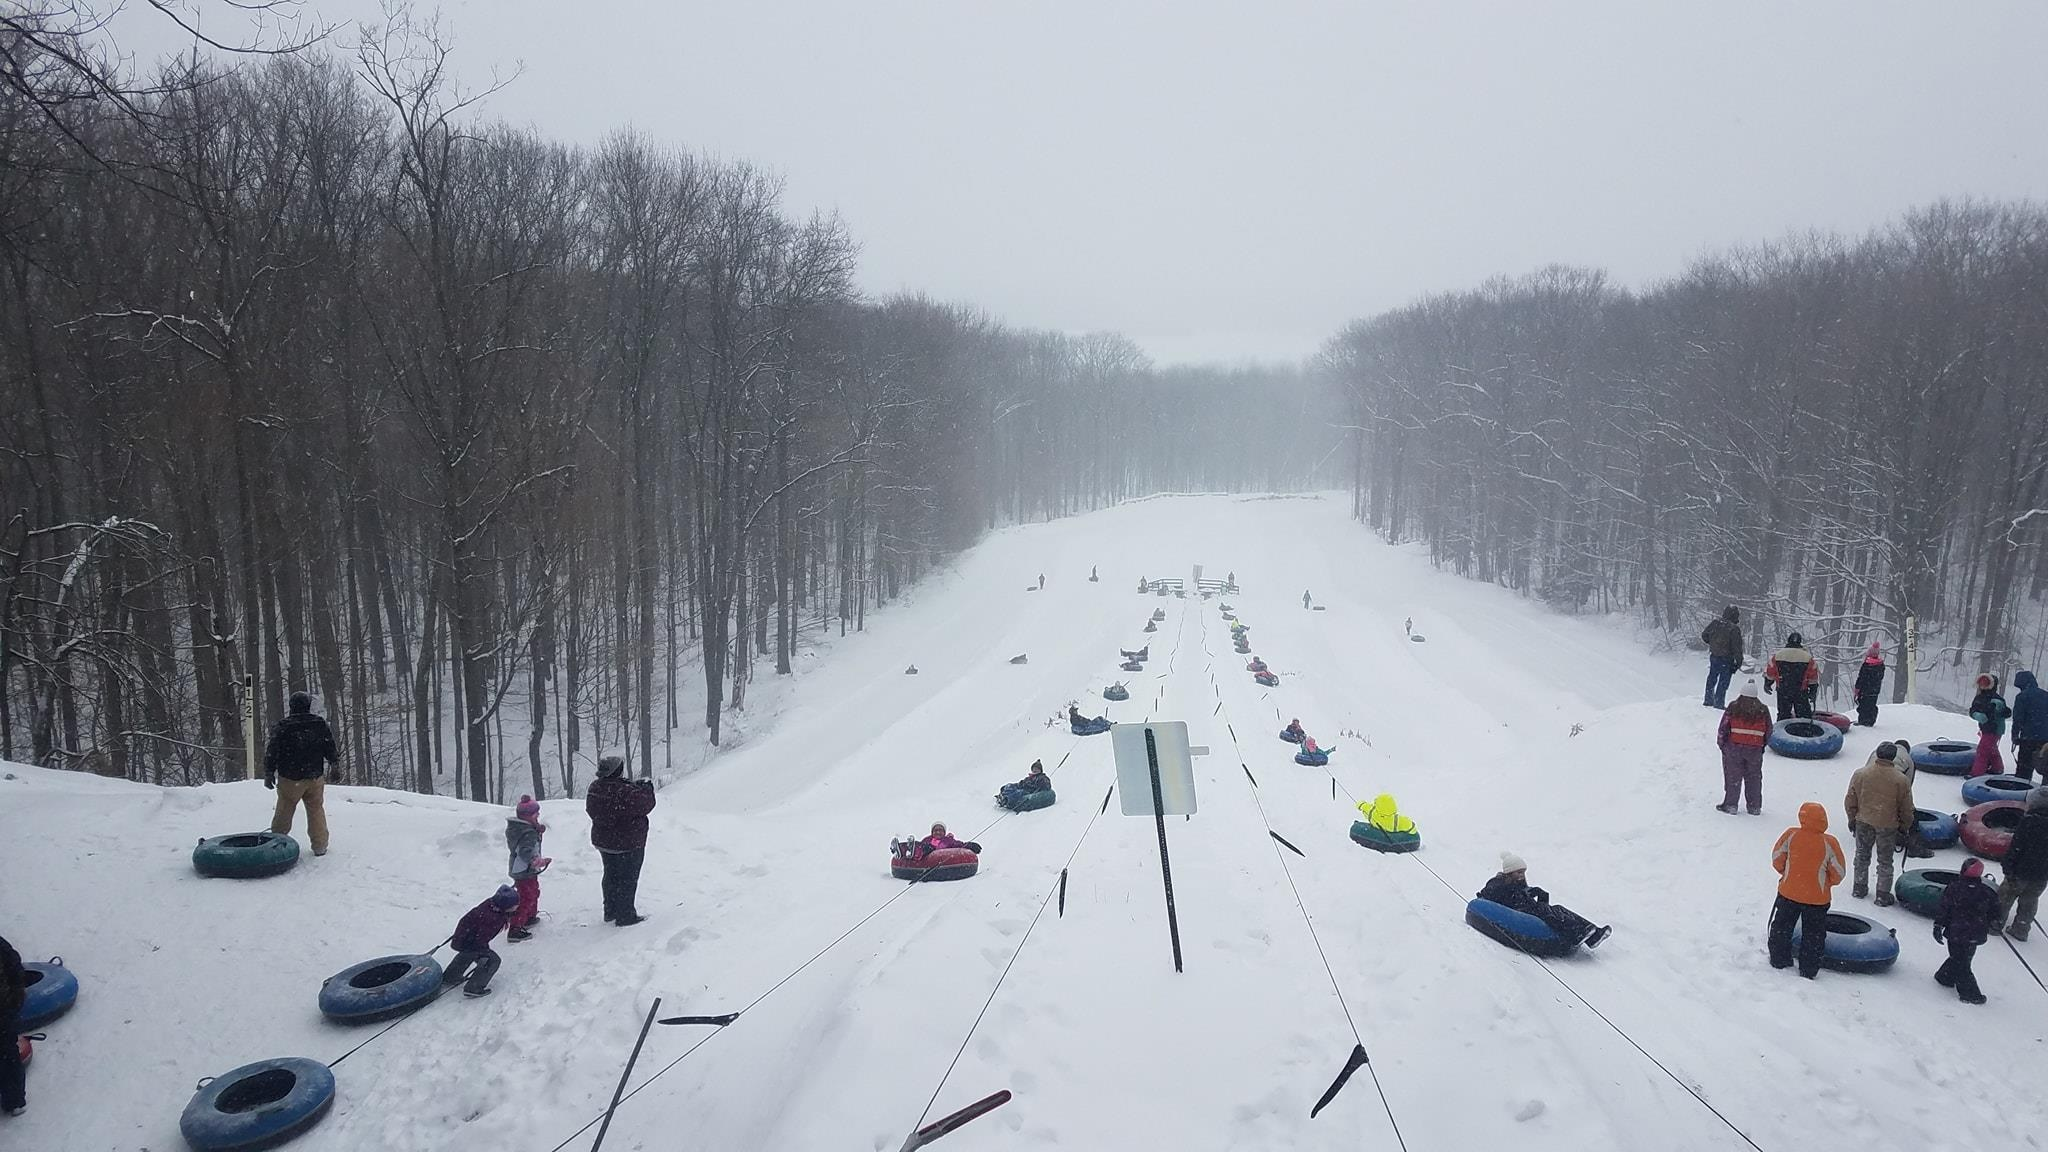 You'll find winter fun for the whole family in central Wisconsin at Powers Bluff, near Marshfield.